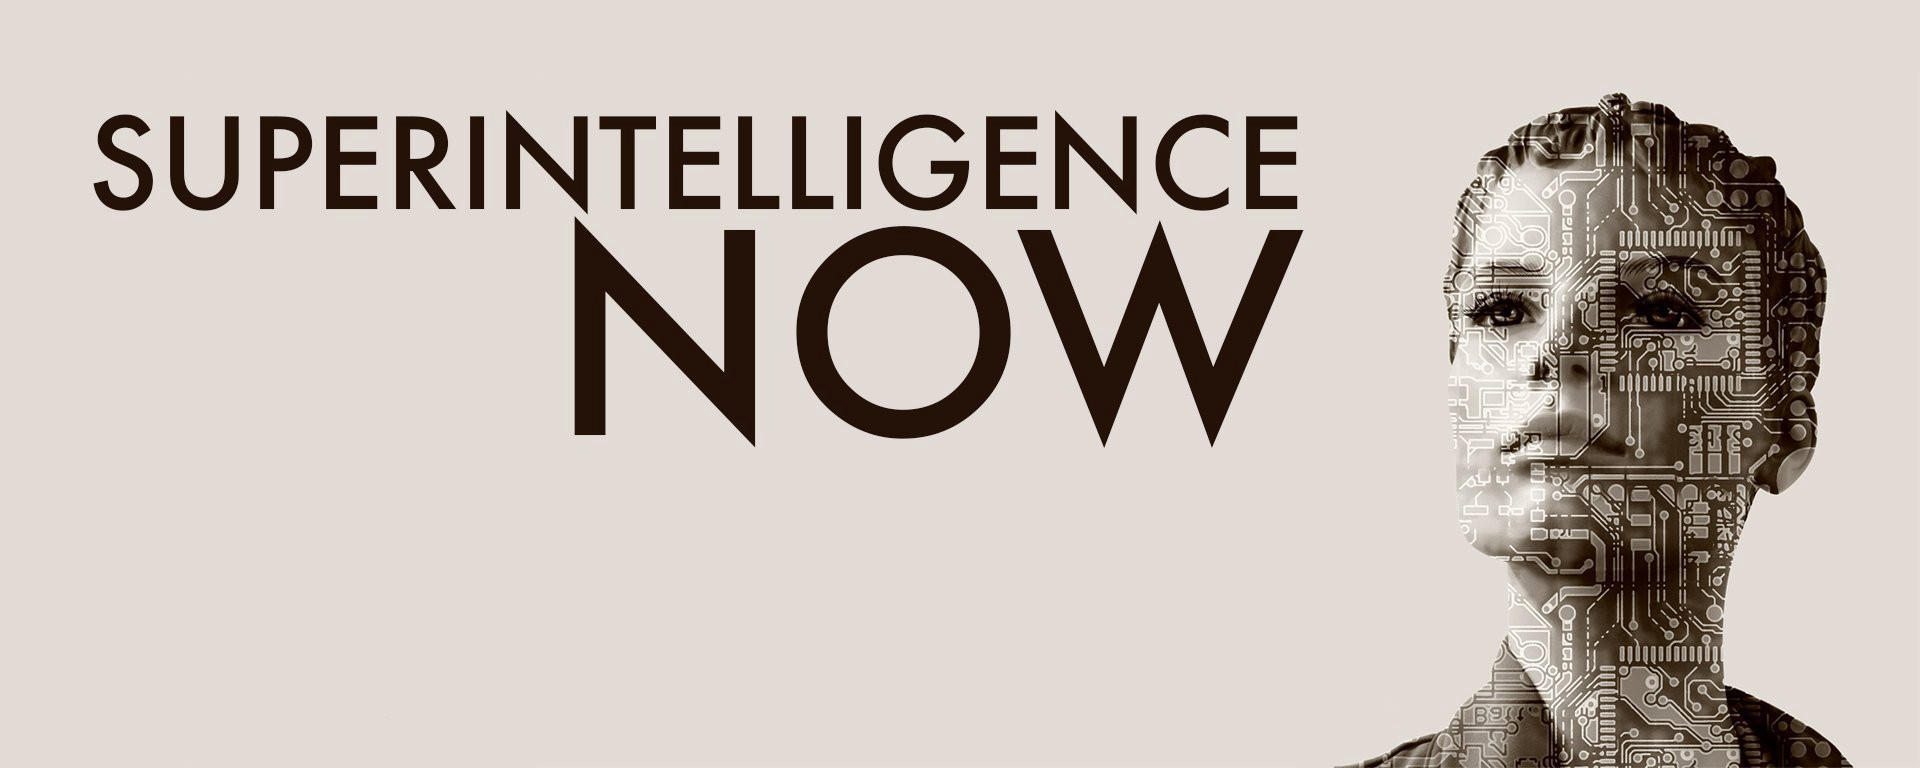 Superintelligence Now How We Get To Next Scientists Create Circuit Board Modeled On The Human Brain W Video Some Form Of Rogue Artificial Intelligence Does Manage Follow Playbook A Thousand Science Fiction Narratives And Enslave Race